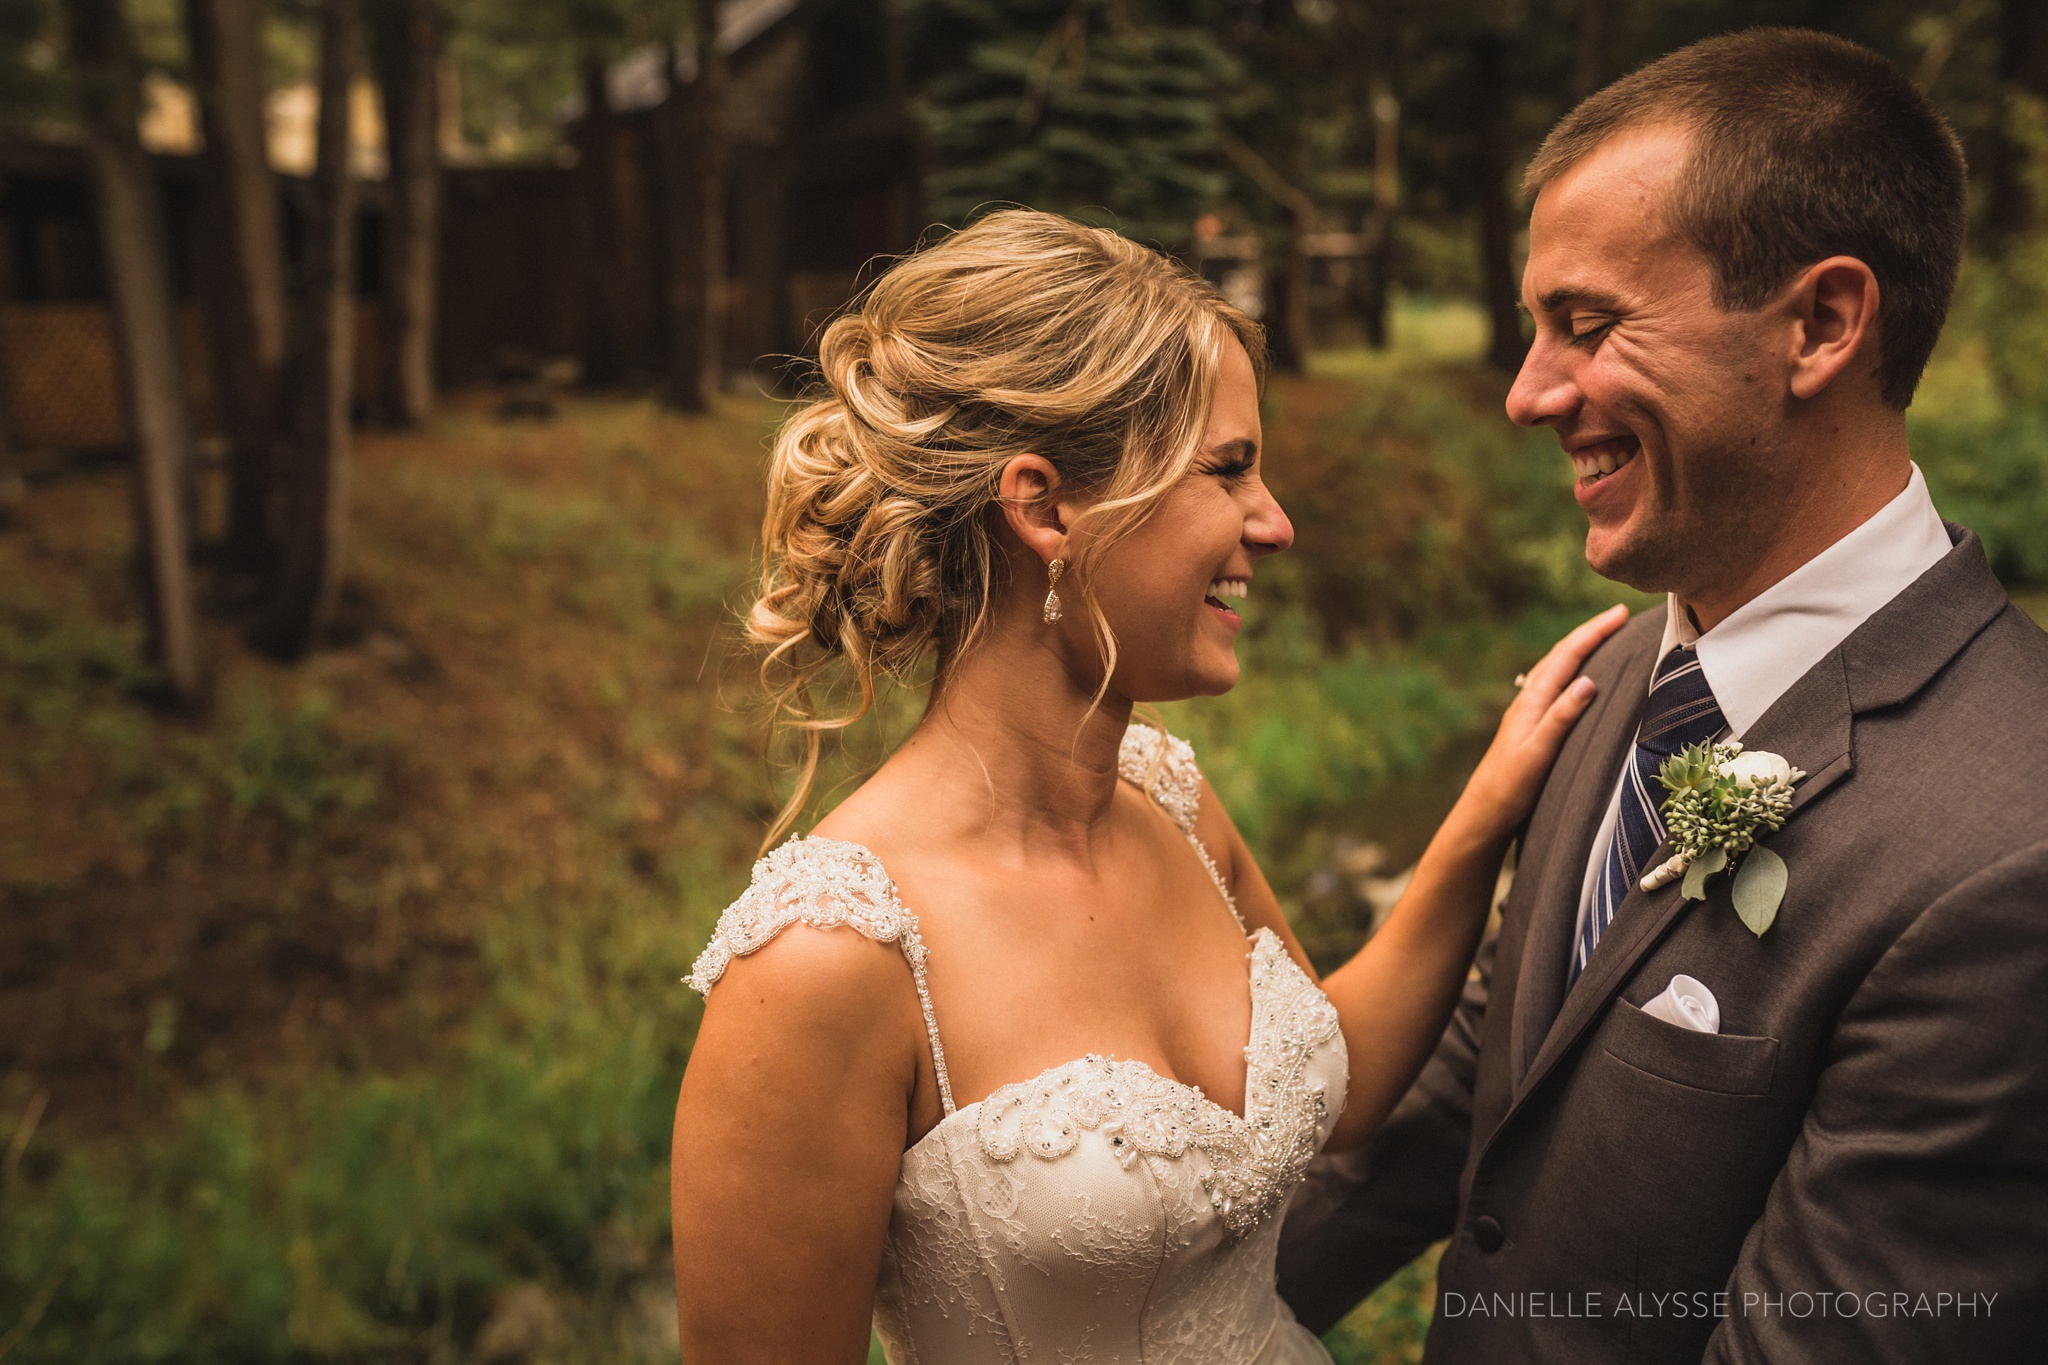 170819_blog_leslie_jeremy_wedding_bear_valley_lodge_arnold_danielle_alysse_photography_sacramento_photographer_deliver695_WEB.jpg